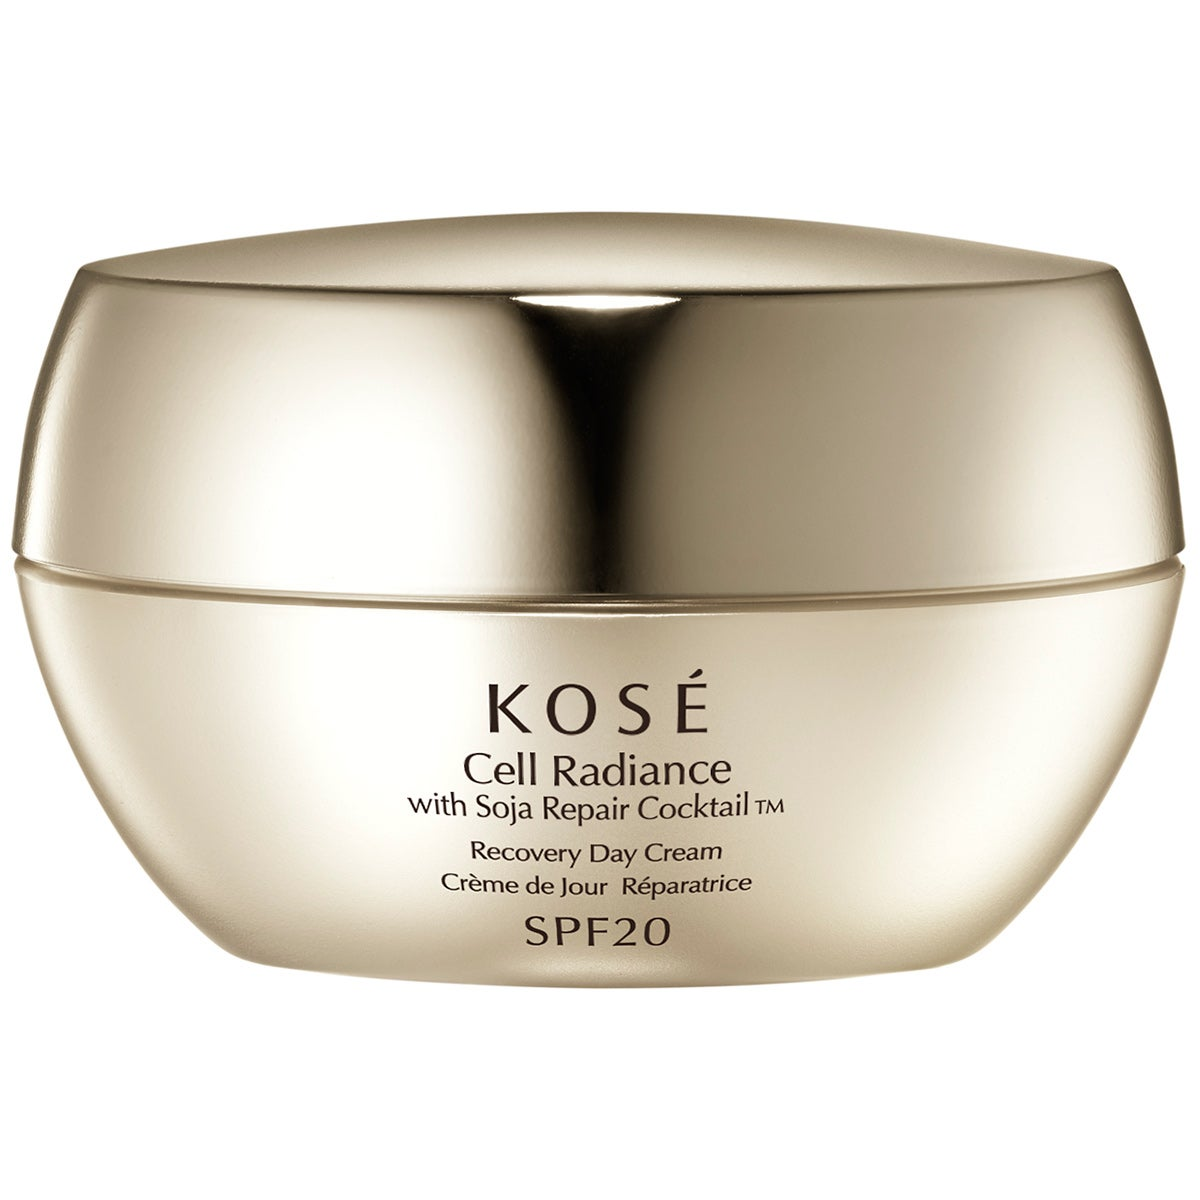 KOSÉ Cell Radiance Recovery Day Cream SPF 20